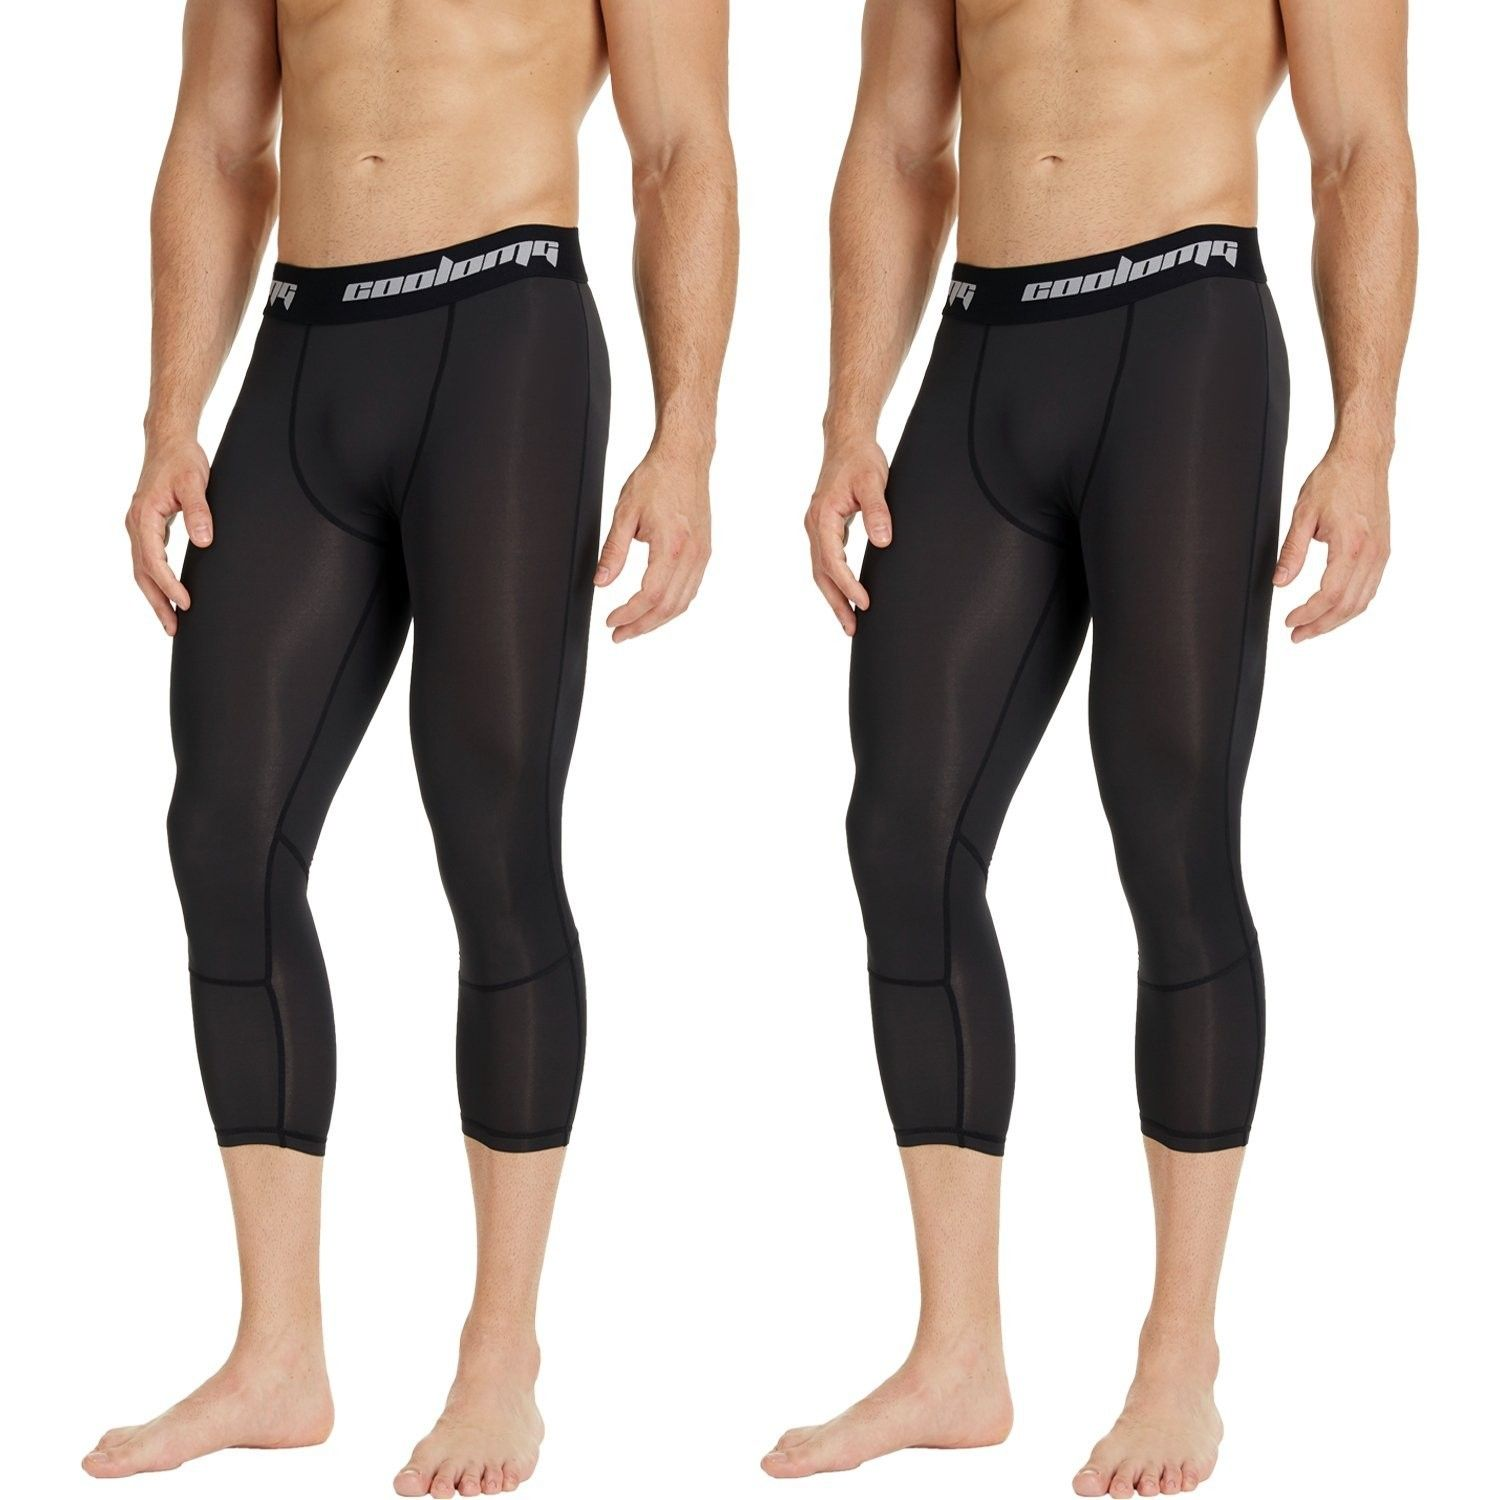 75e21b1777fd1 Compression Sports Basketball Running - CN188AOM2SW,Men's Clothing, Active,  Active Pants #men #fashion #clothing #style #outfits #Active Pants